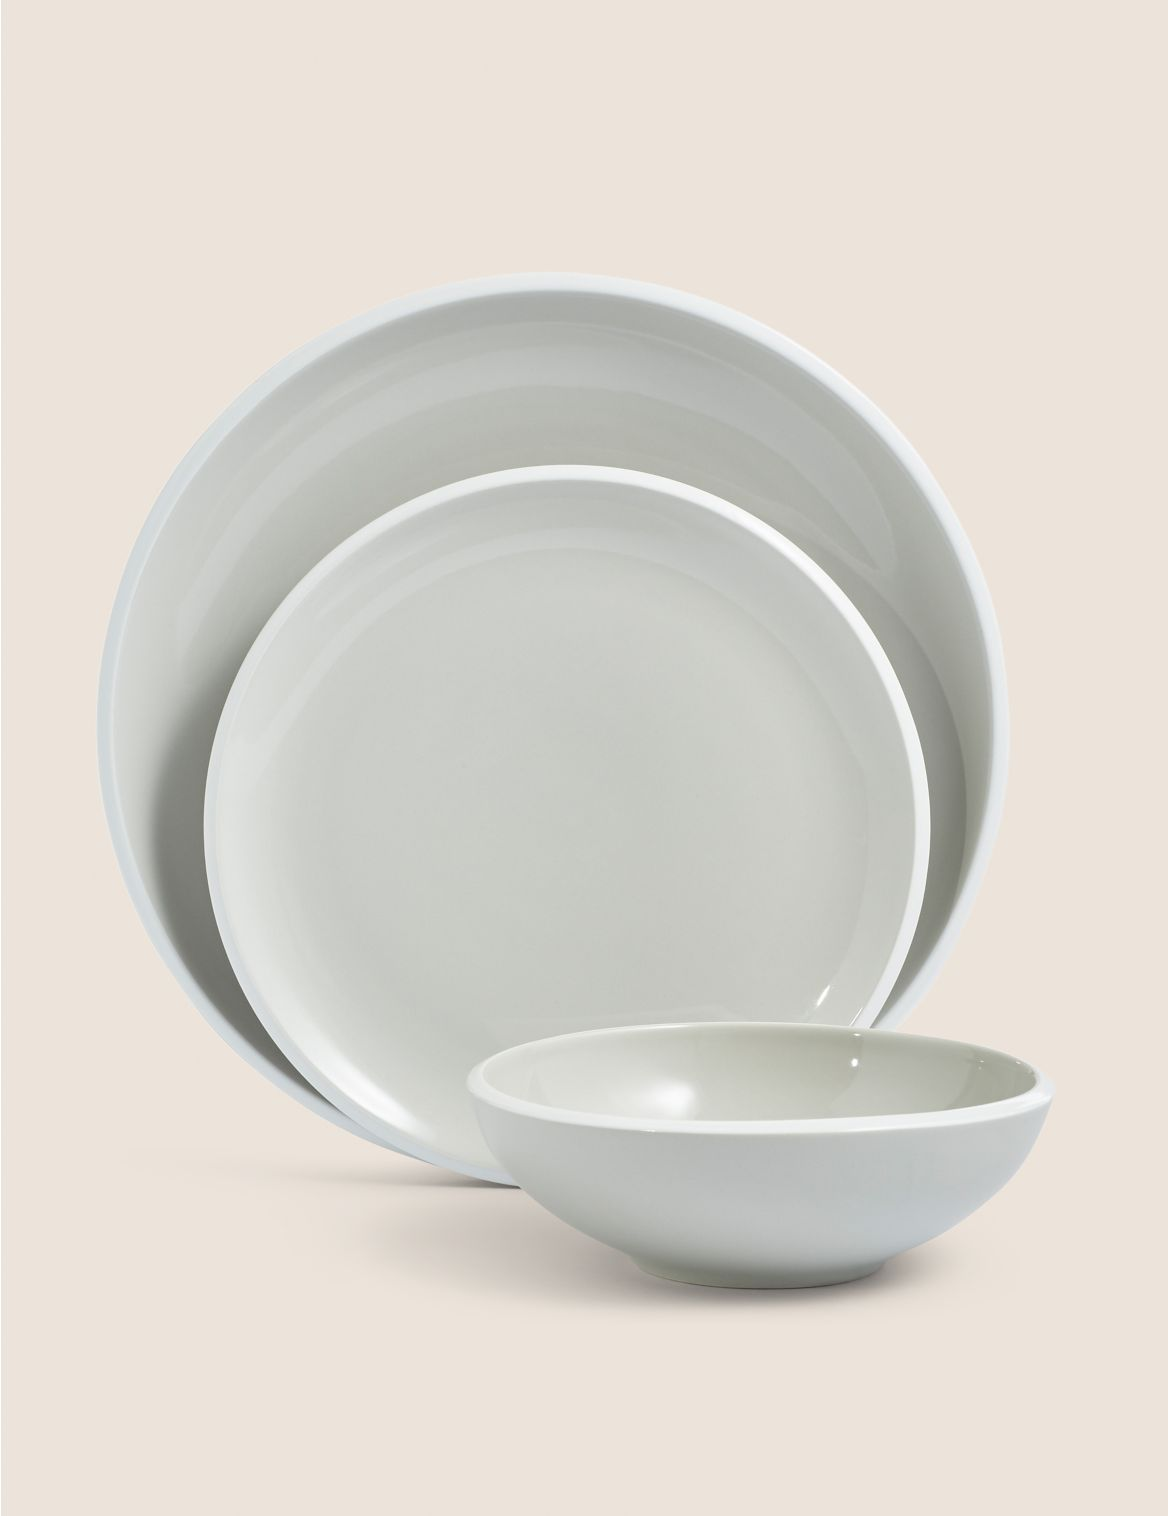 12 Piece Oslo Dinner Set grey mix